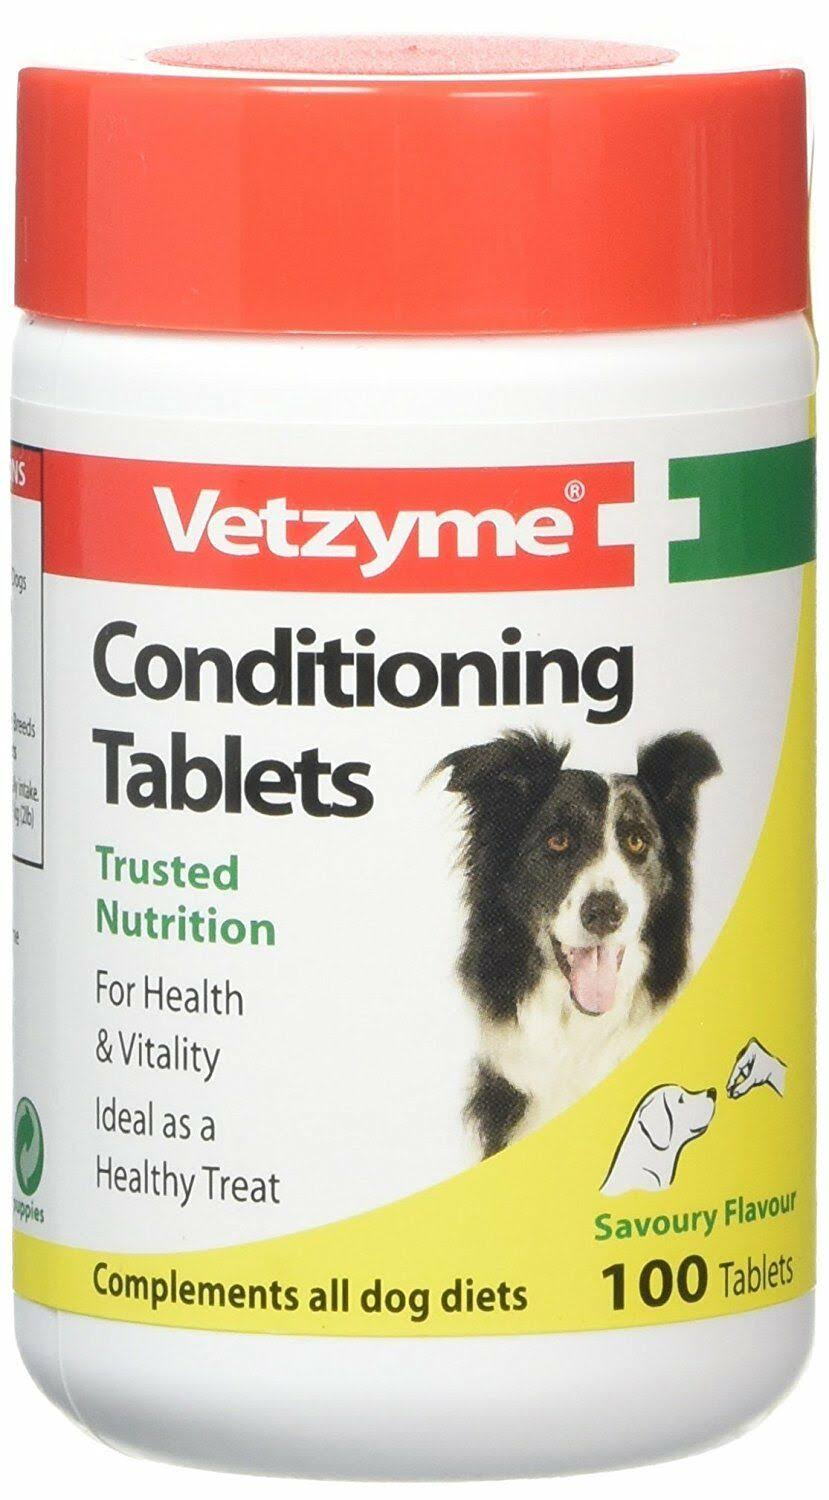 Vetzyme Conditioning Tablets - 100s